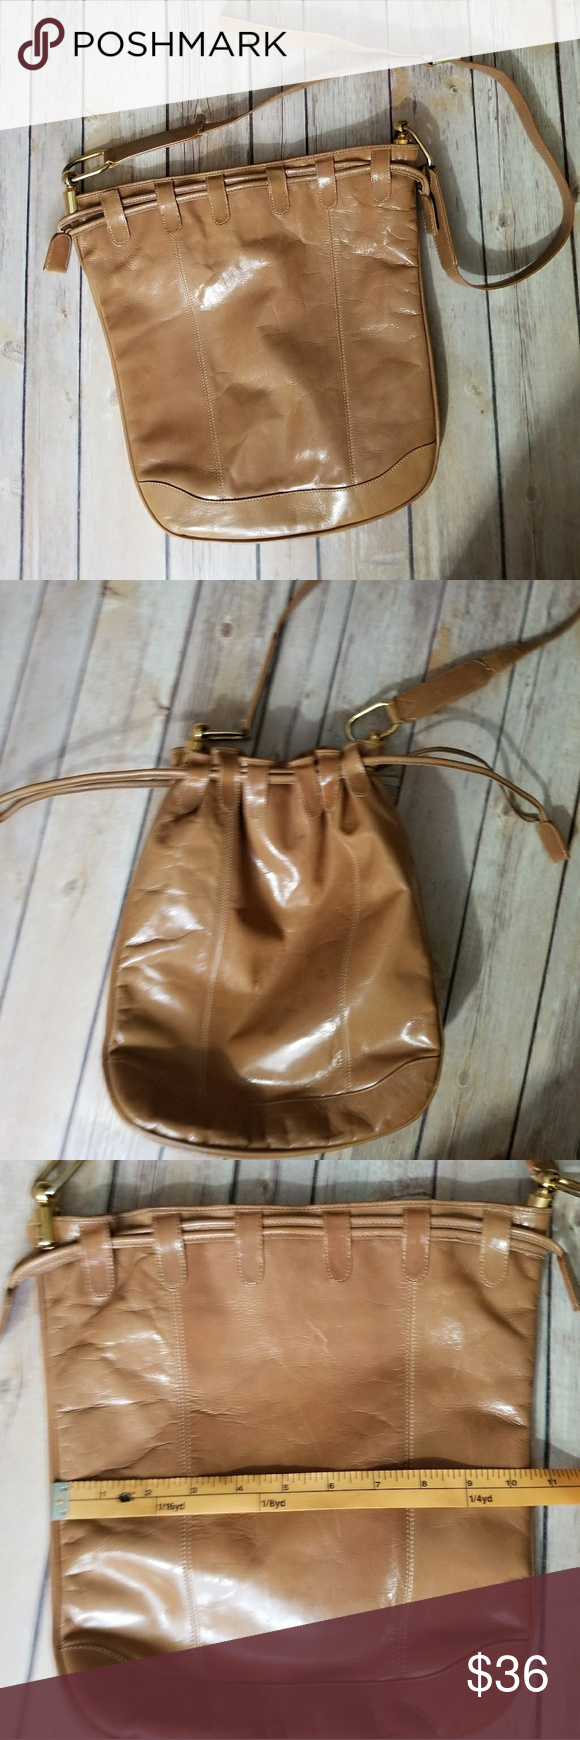 BORSA BELLA vintage leather bag Vintage tan leather bag with drawstring top. Adjustable strap. Gold toned hardware. Snap closure. Great condition except for some tearing of one strap hole as shown in last photo Borsa Bella Bags